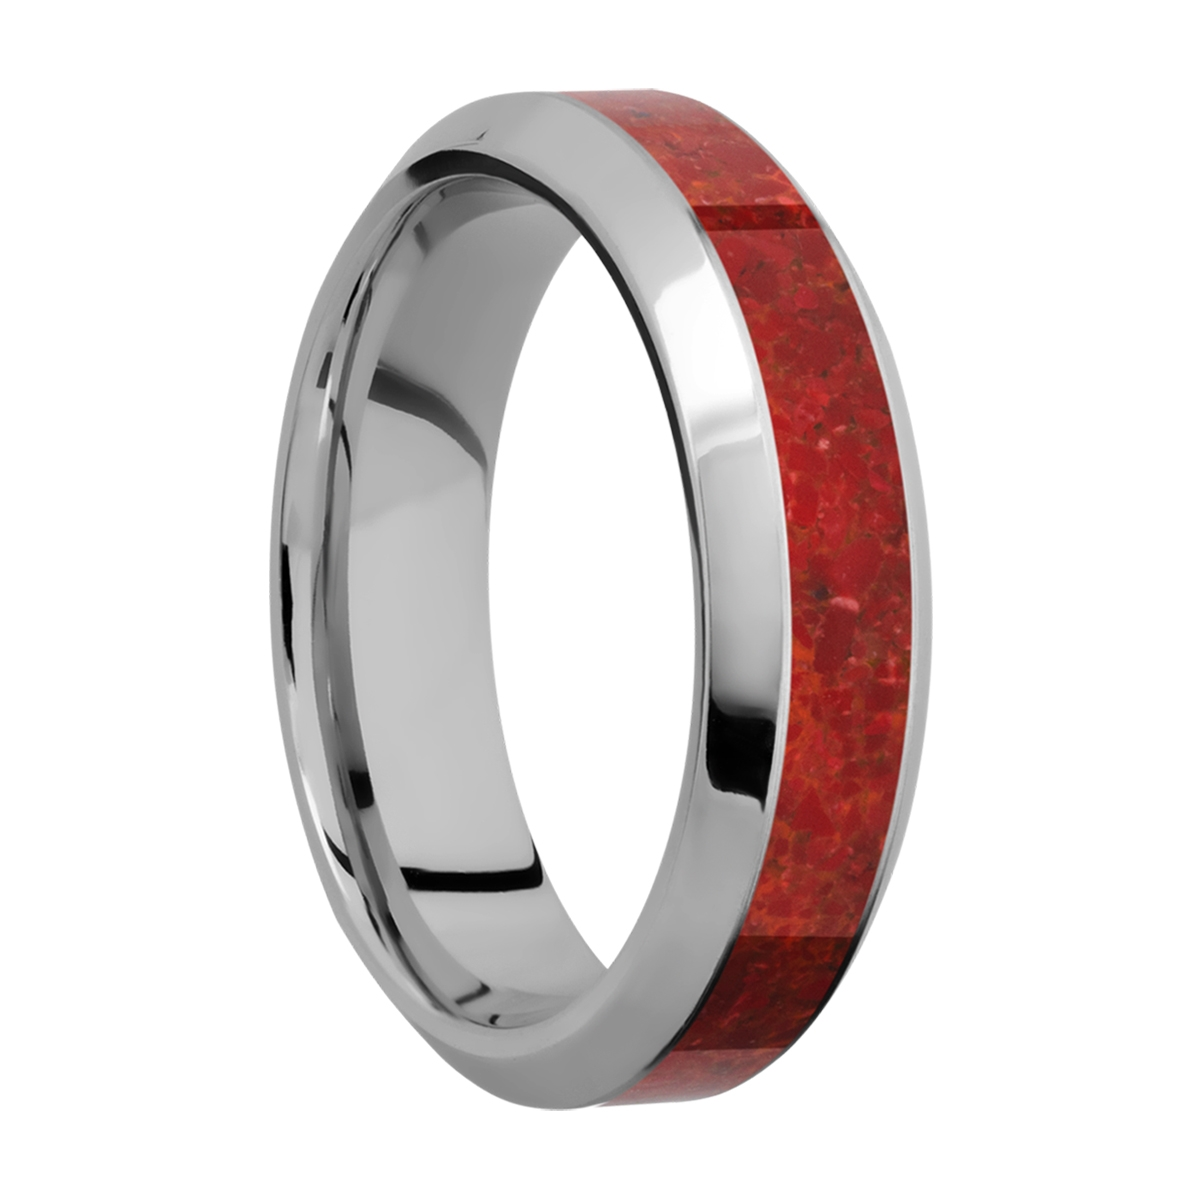 Lashbrook 6HB13/MOSAIC Titanium Wedding Ring or Band Alternative View 1